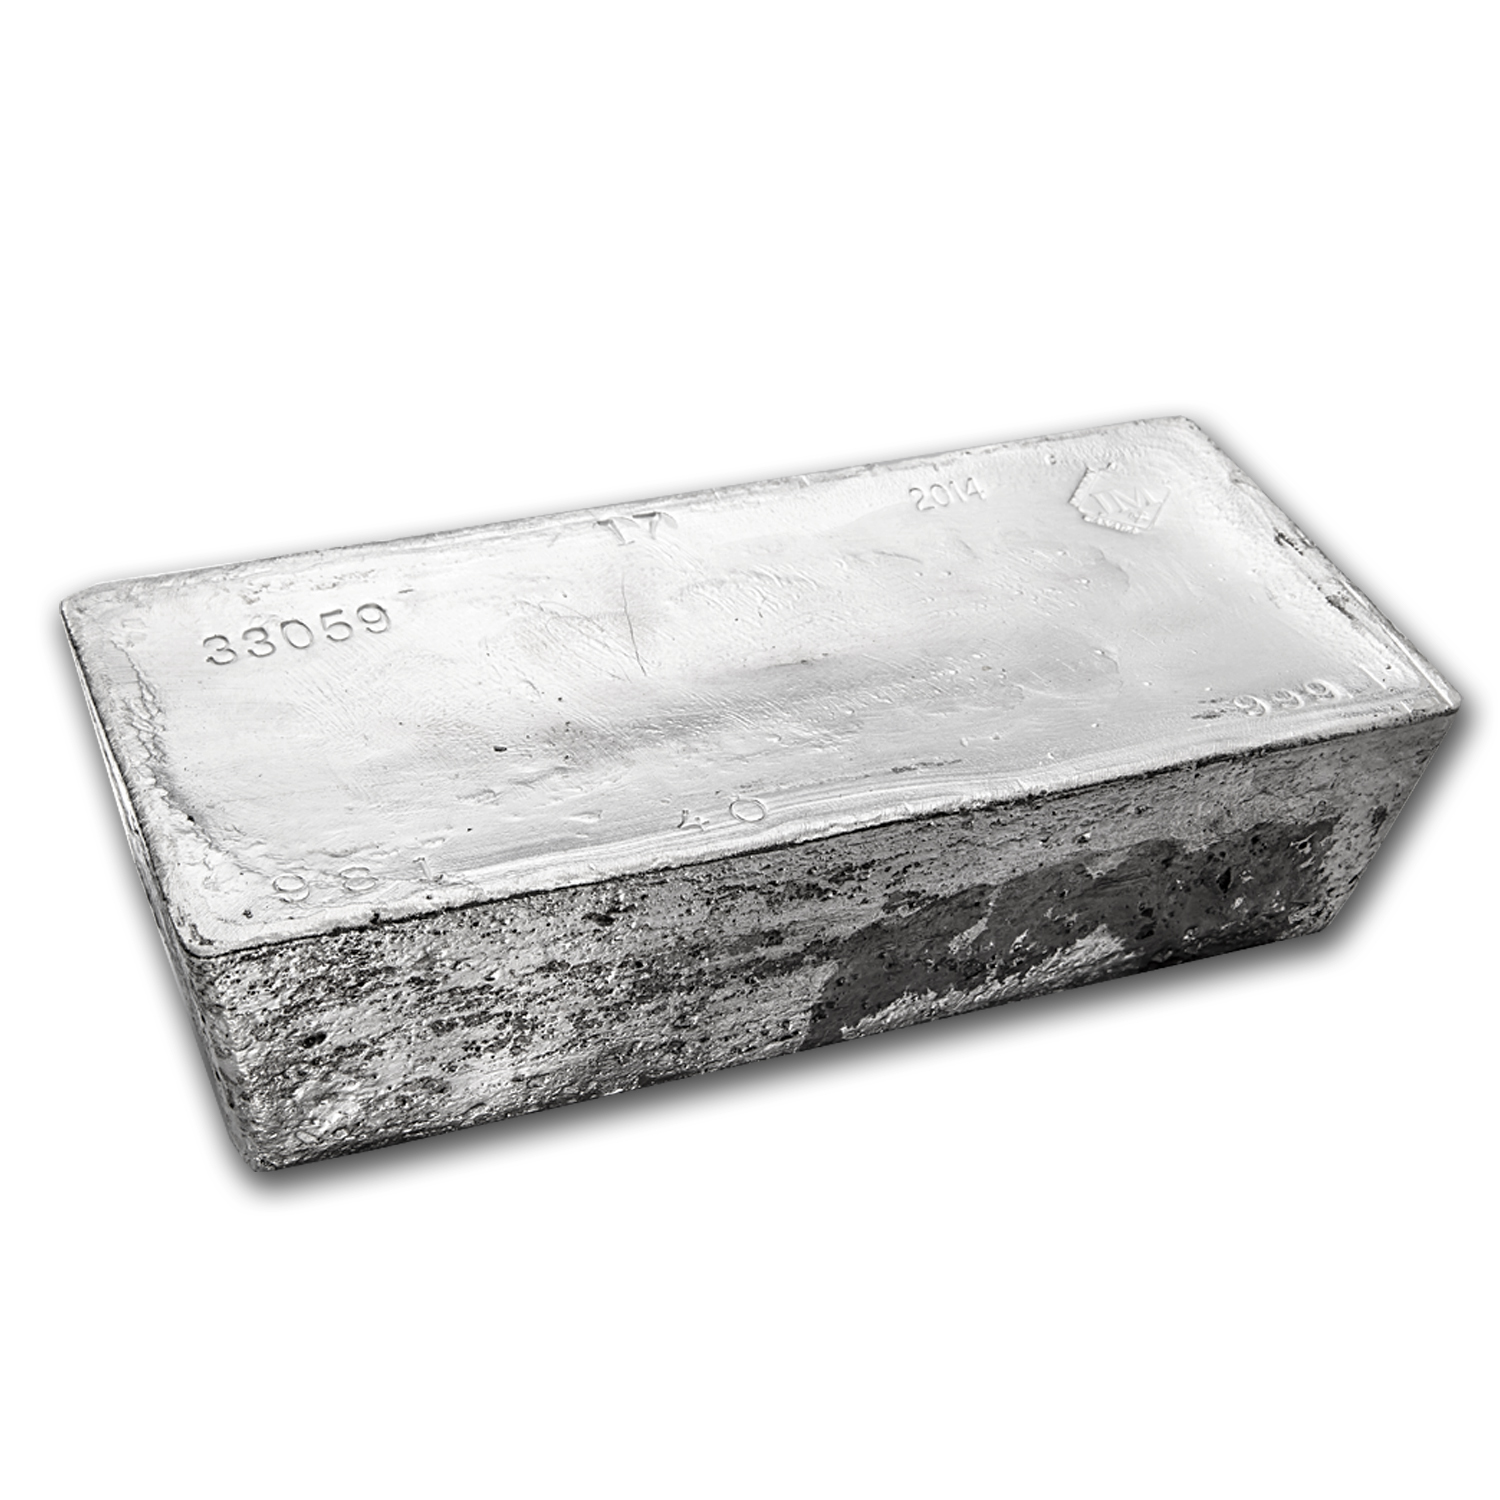 902.30 oz Silver Bar - Johnson Matthey